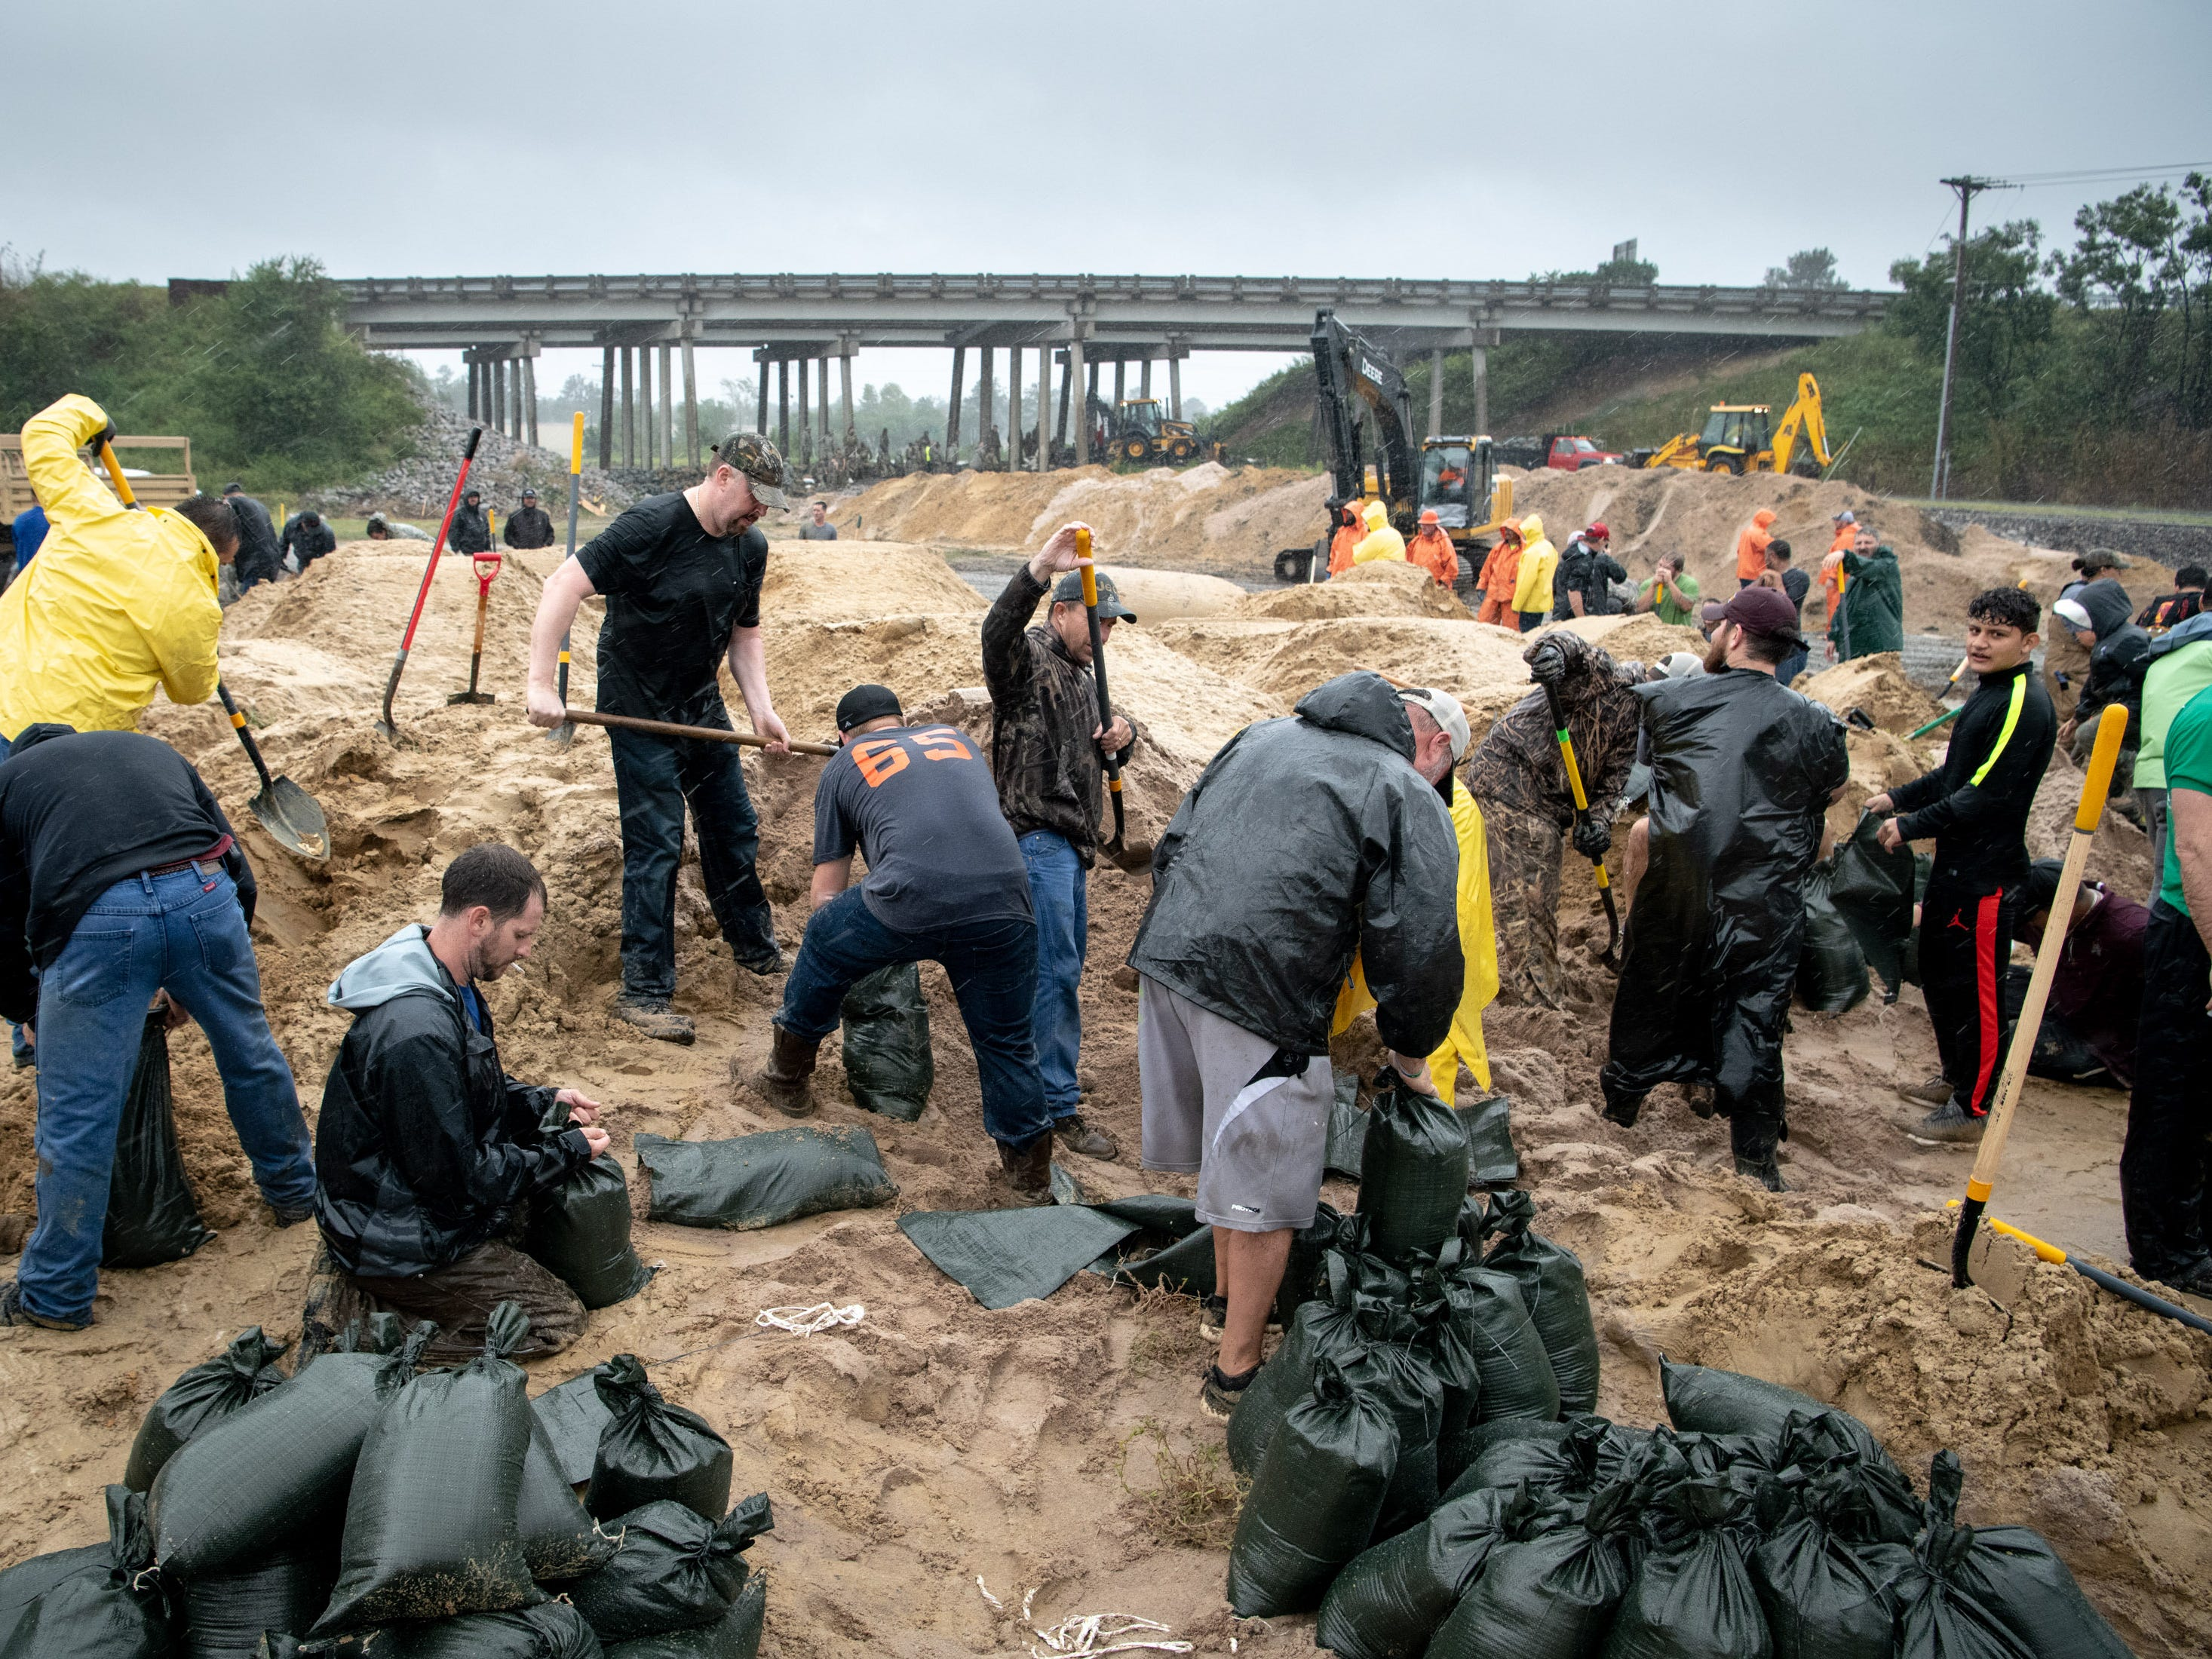 Volunteers fills sandbags to reinforce a low-lying area as Hurricane Florence approaches Lumberton, N.C., Friday, Sept. 14, 2018.